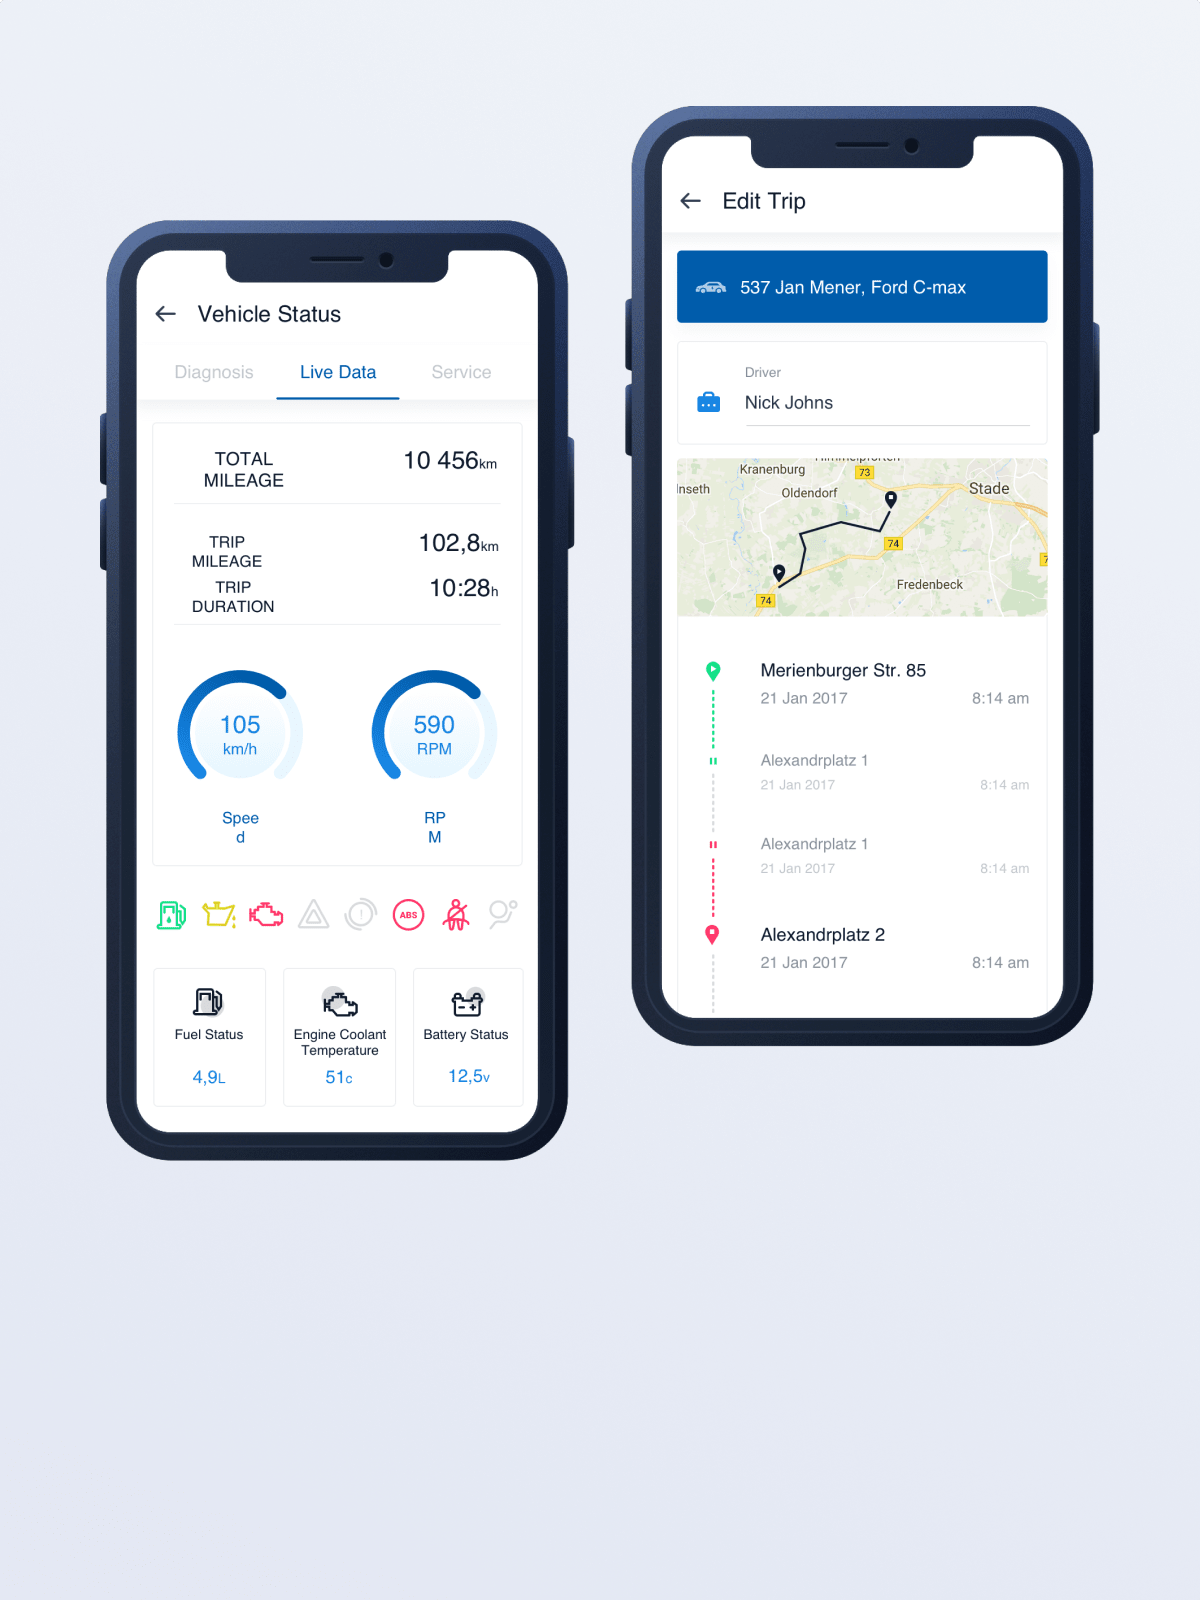 The mobile application for driver assistance